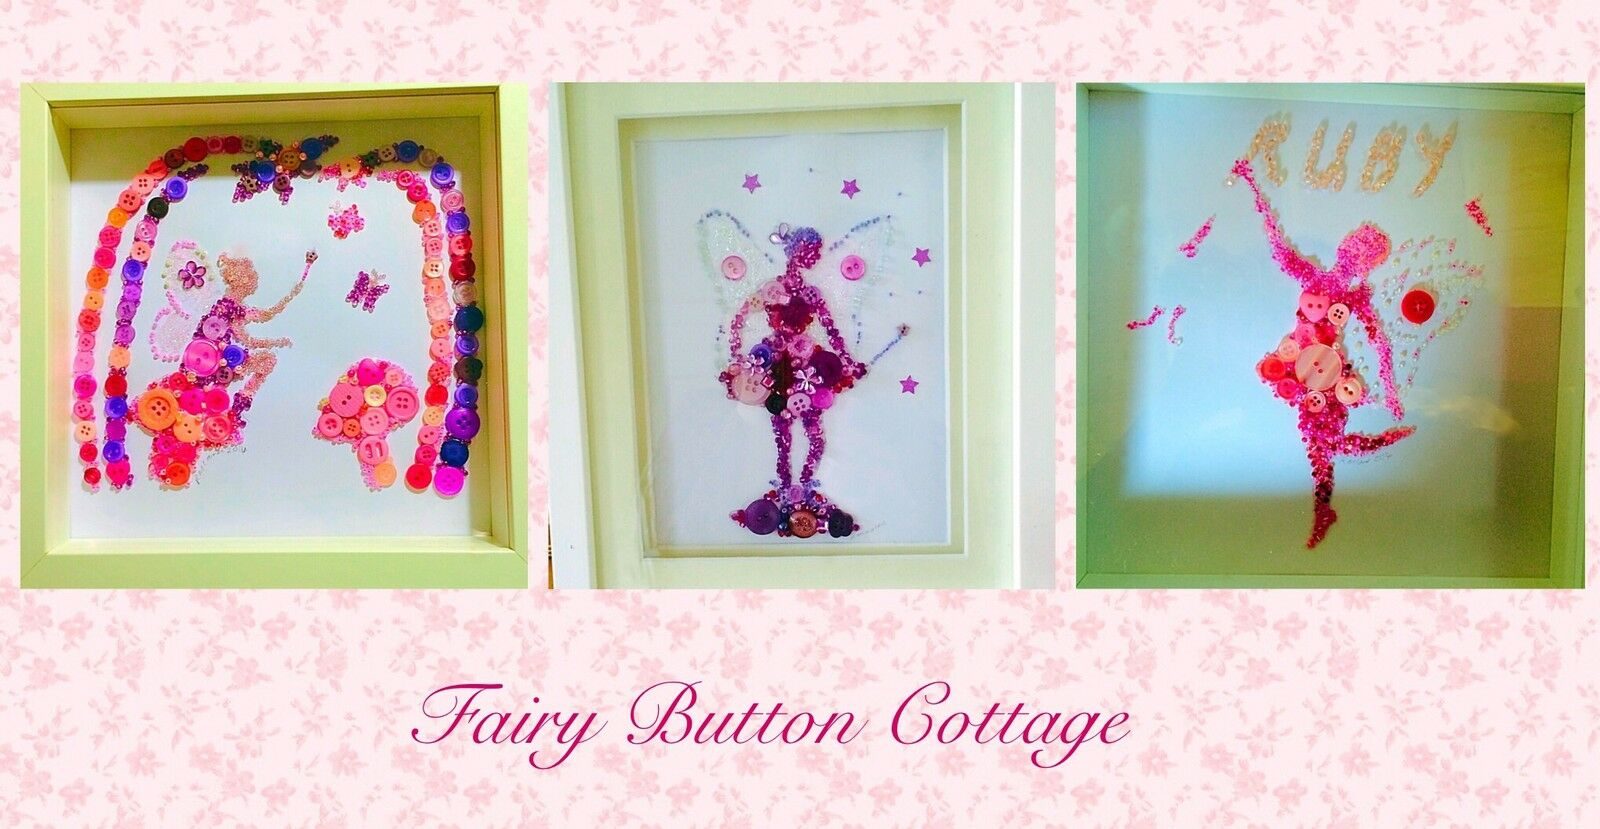 FairyButtonCottage1